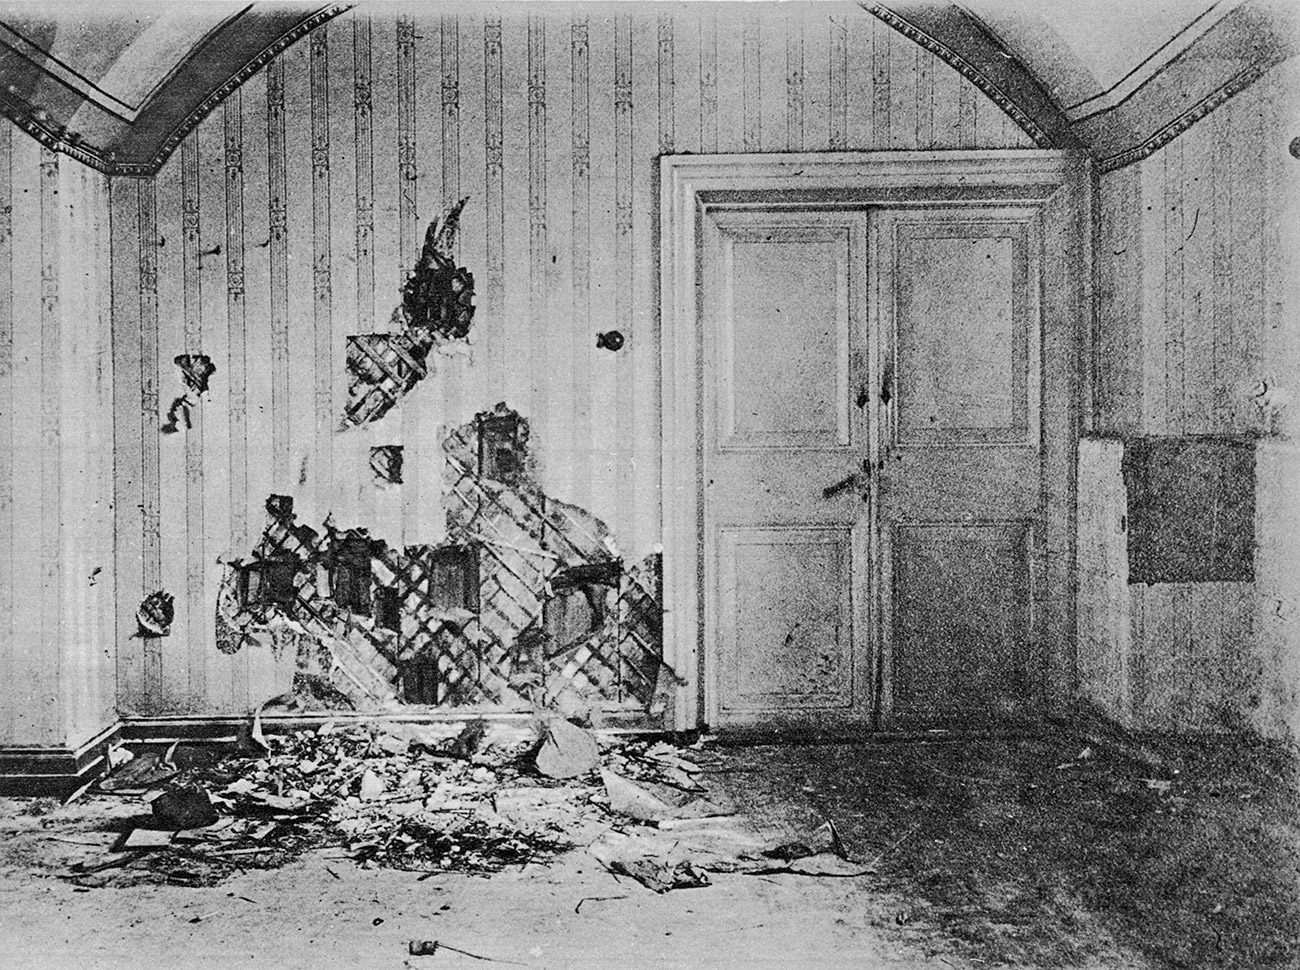 Room in the house of Ipatiev, Ekaterinburg, where the Russian royal family was brutally murdered. 1918